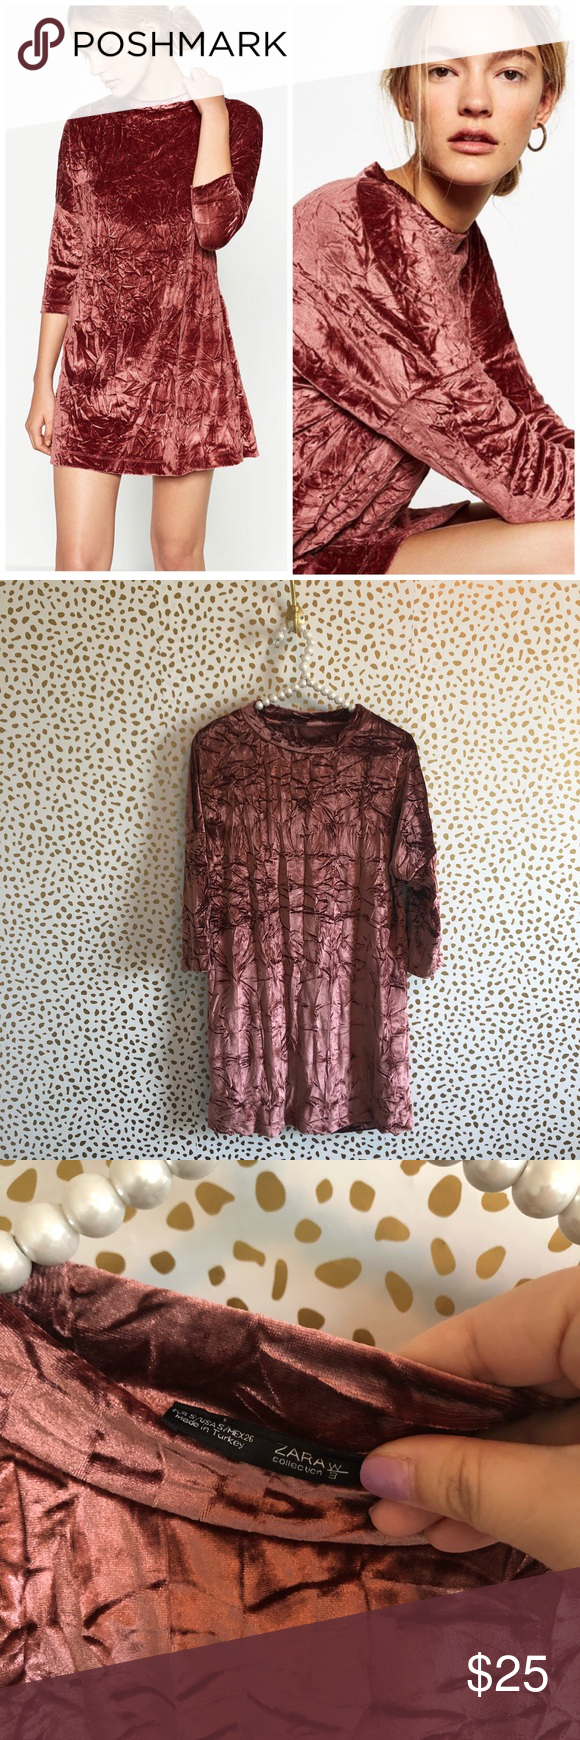 400ed53e Zara Crushed Velvet Mini Dress Excellent pre owned condition. Size small.  Rose pink red color. Crushed velvet. Blogger favorite. No trades!!